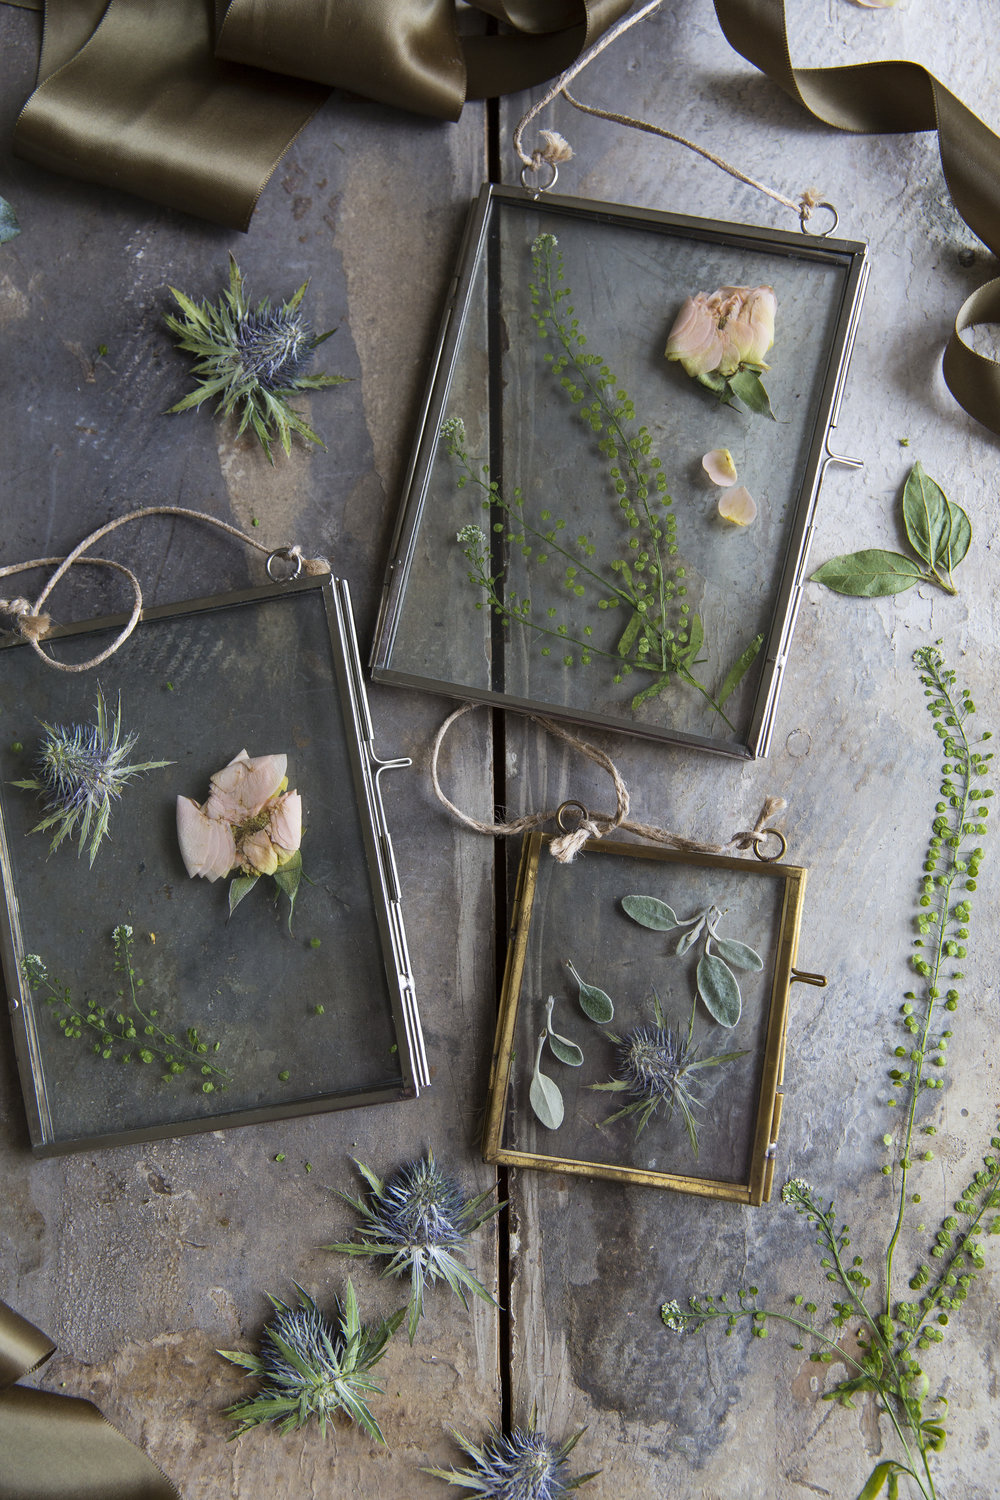 crafting with flowers feature with The Real Flower Co in 91 Magazine